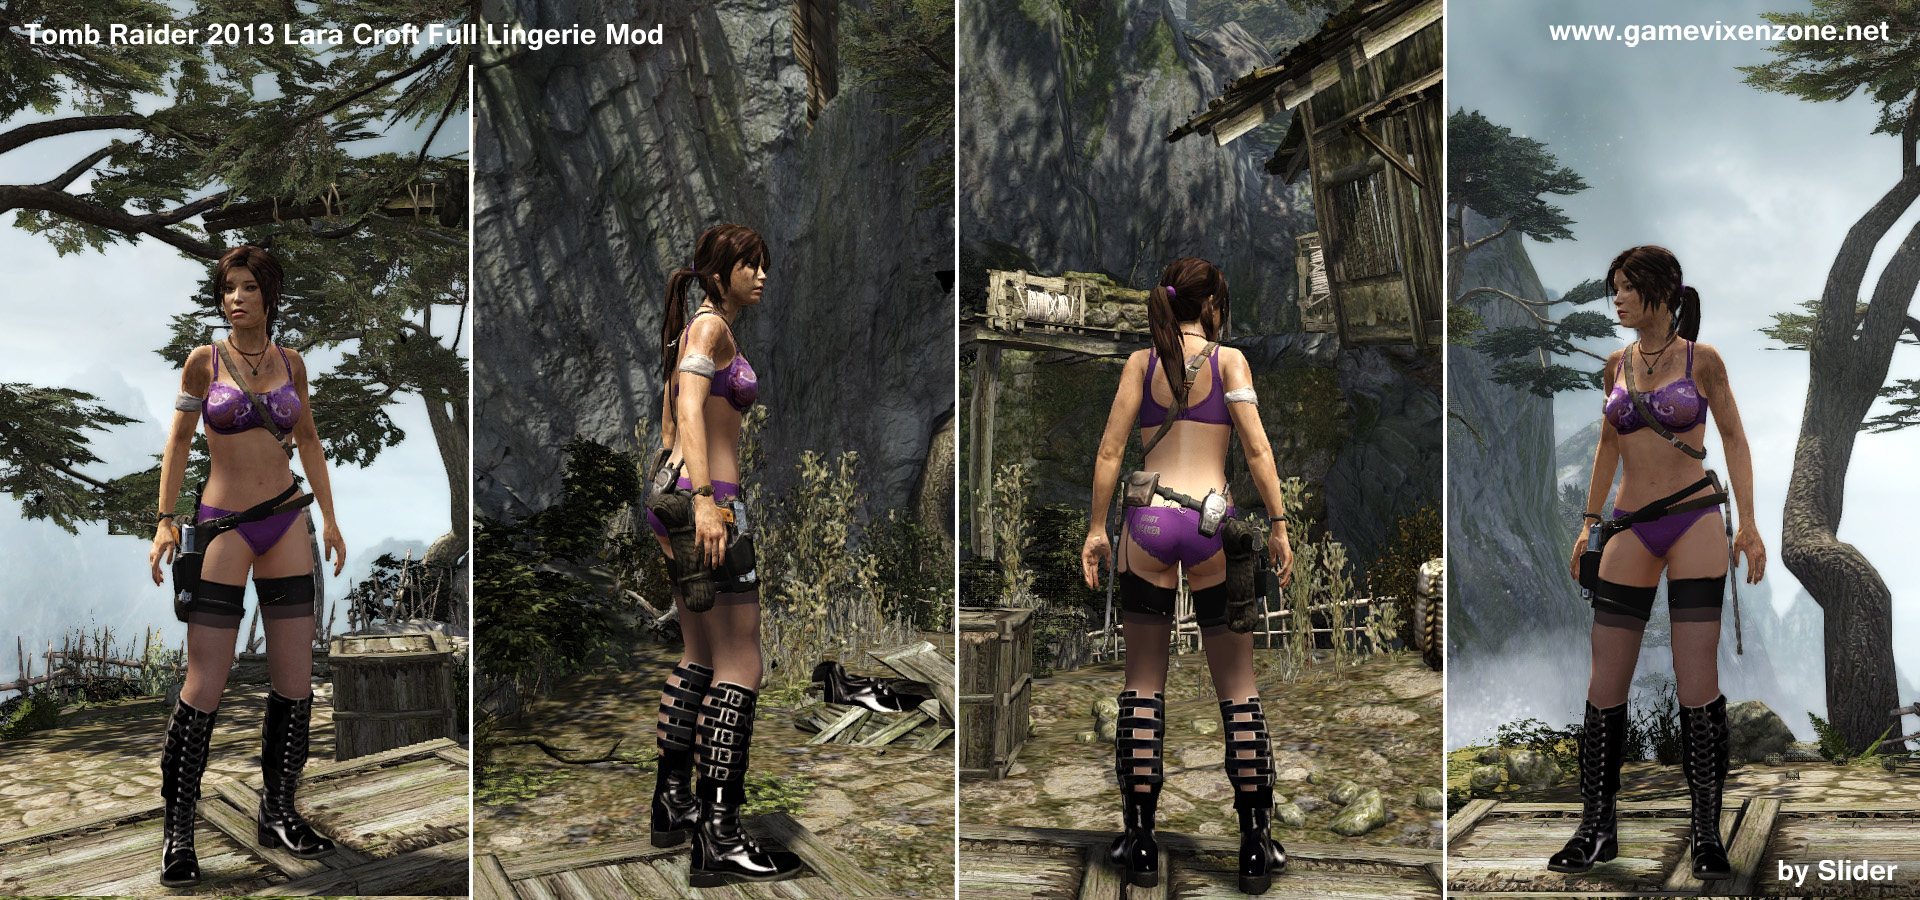 Tomb raider 2013 mods hentia movies